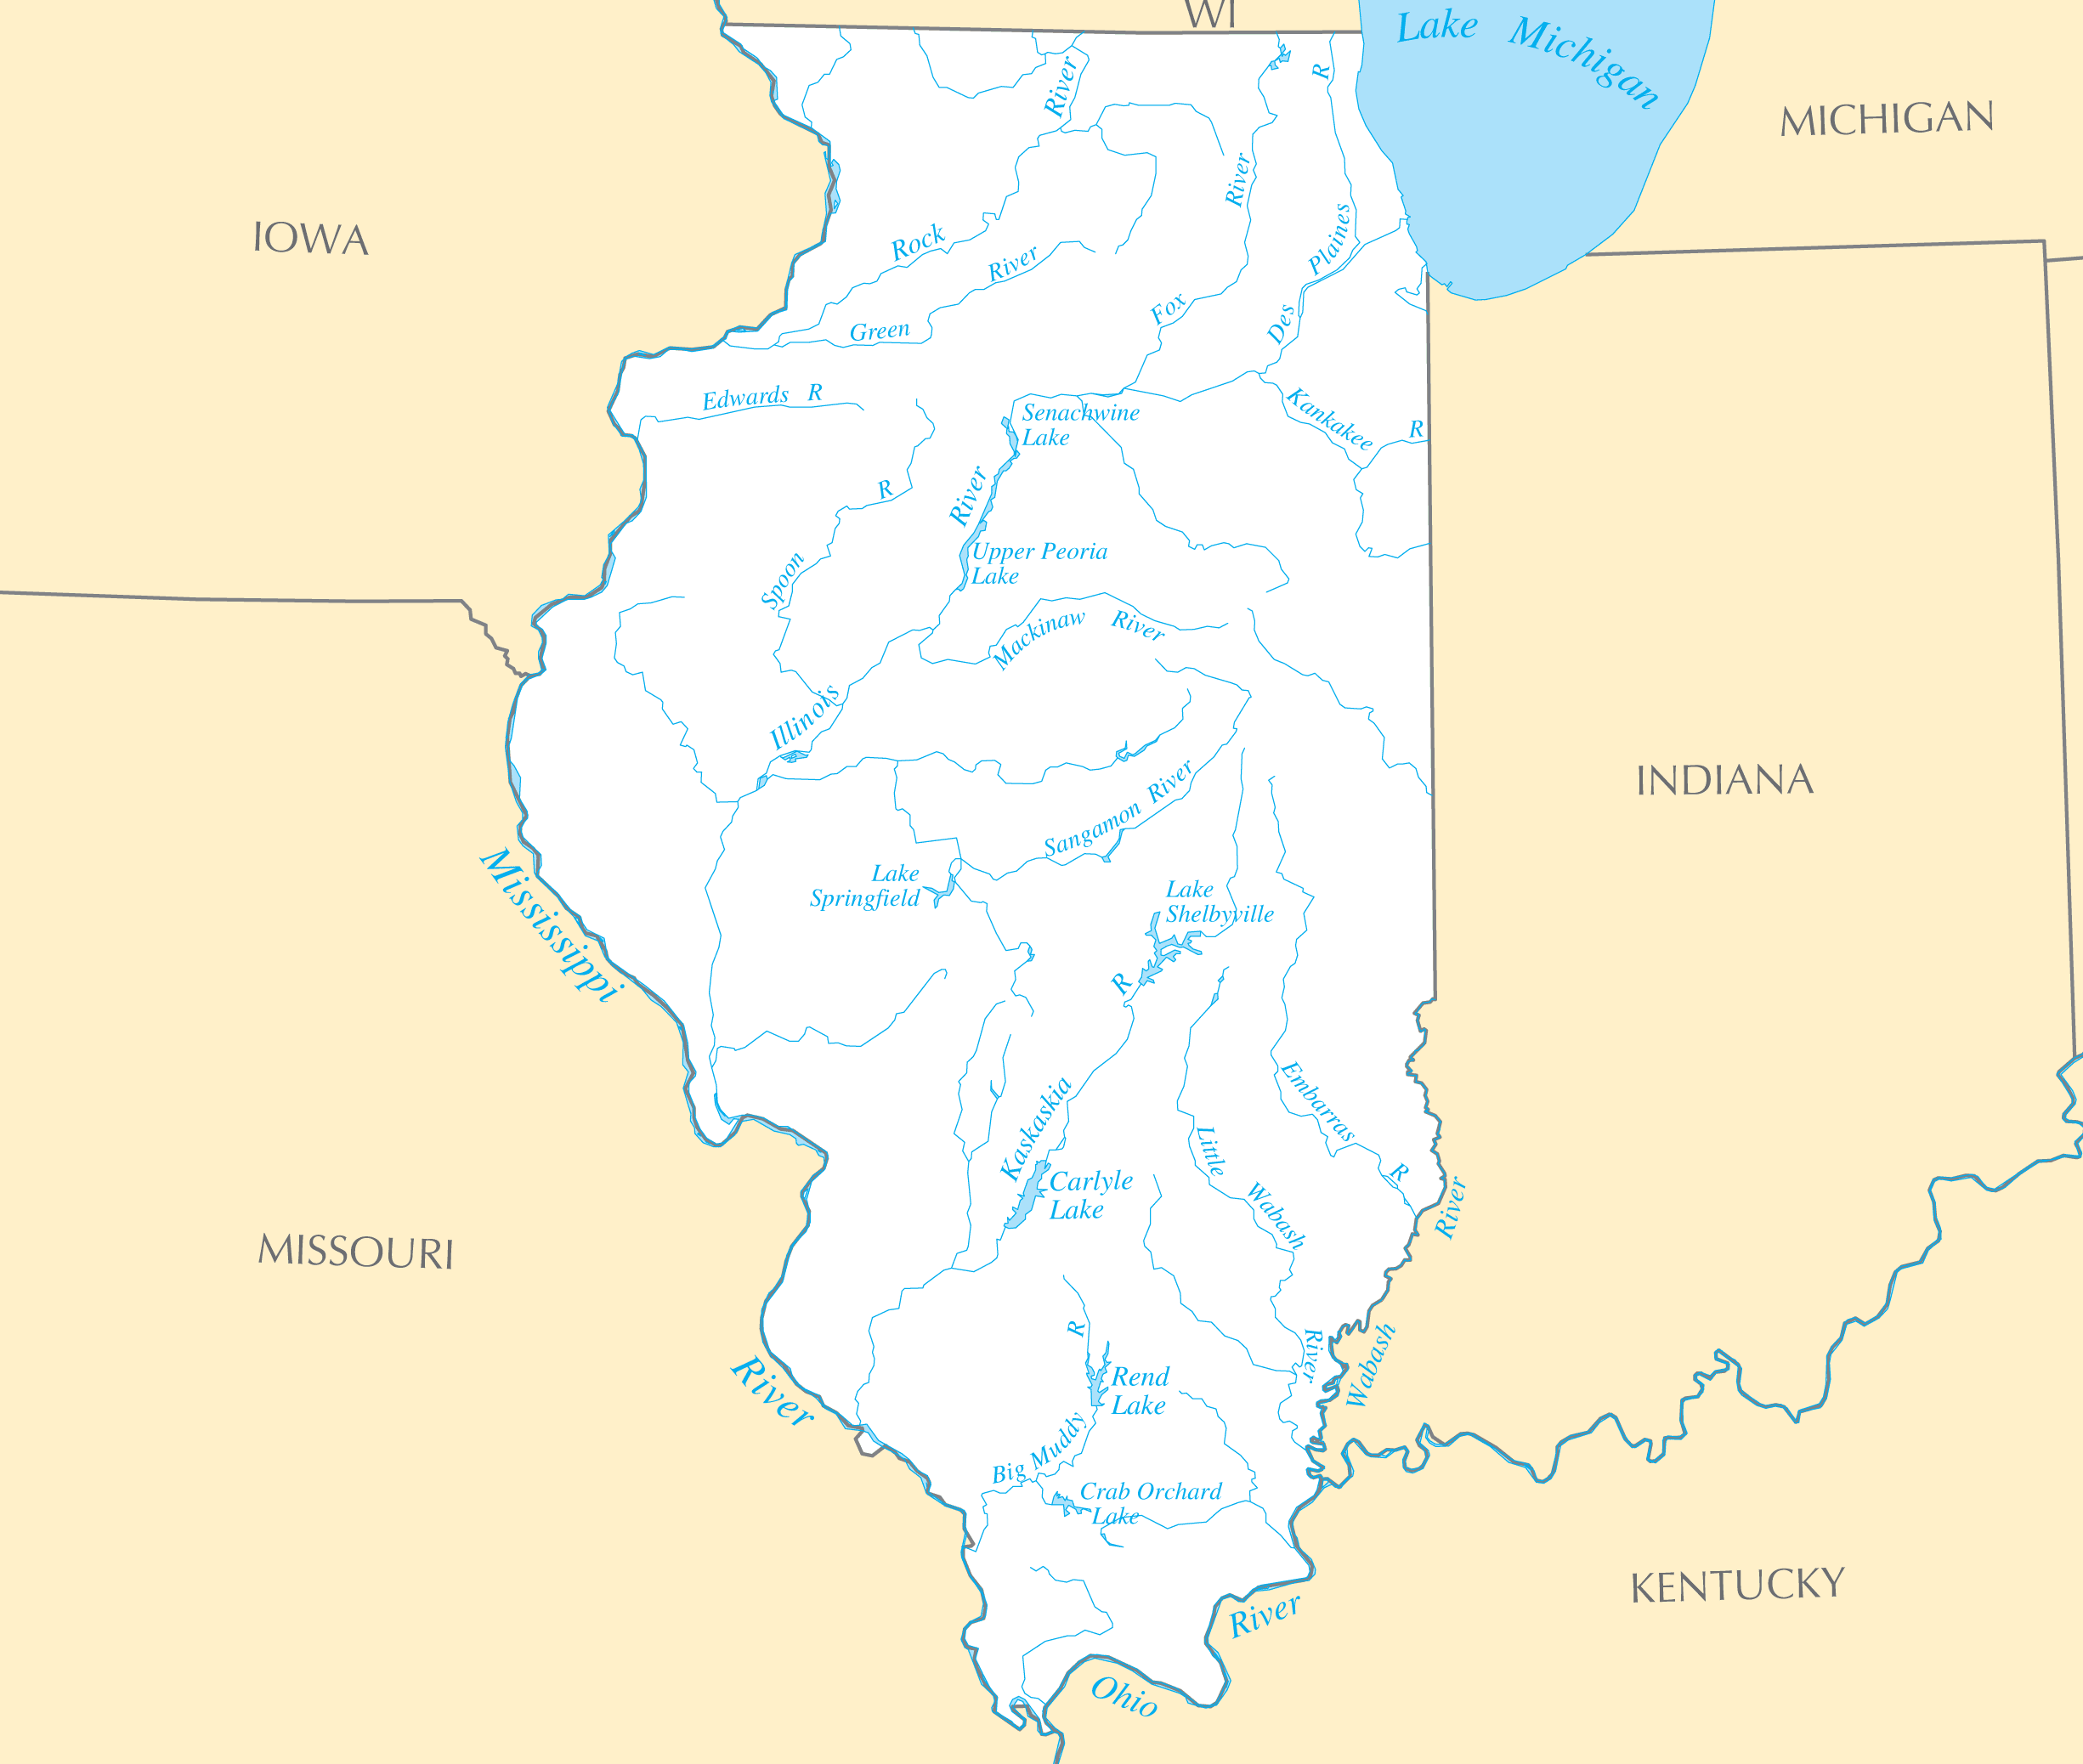 Illinois Rivers And Lakes large map